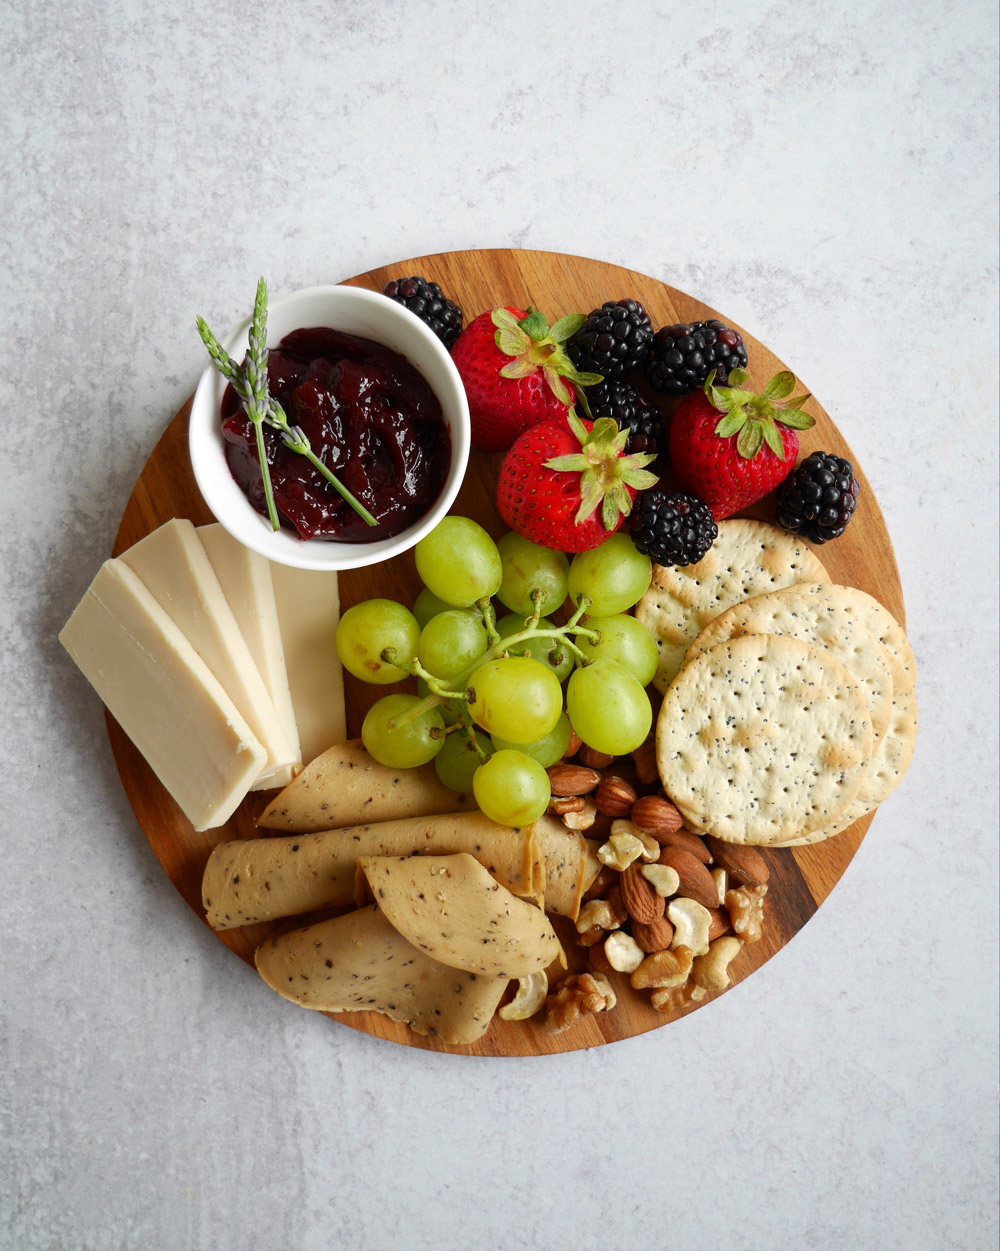 How To Make A Vegan Charcuterie Board, Small Board